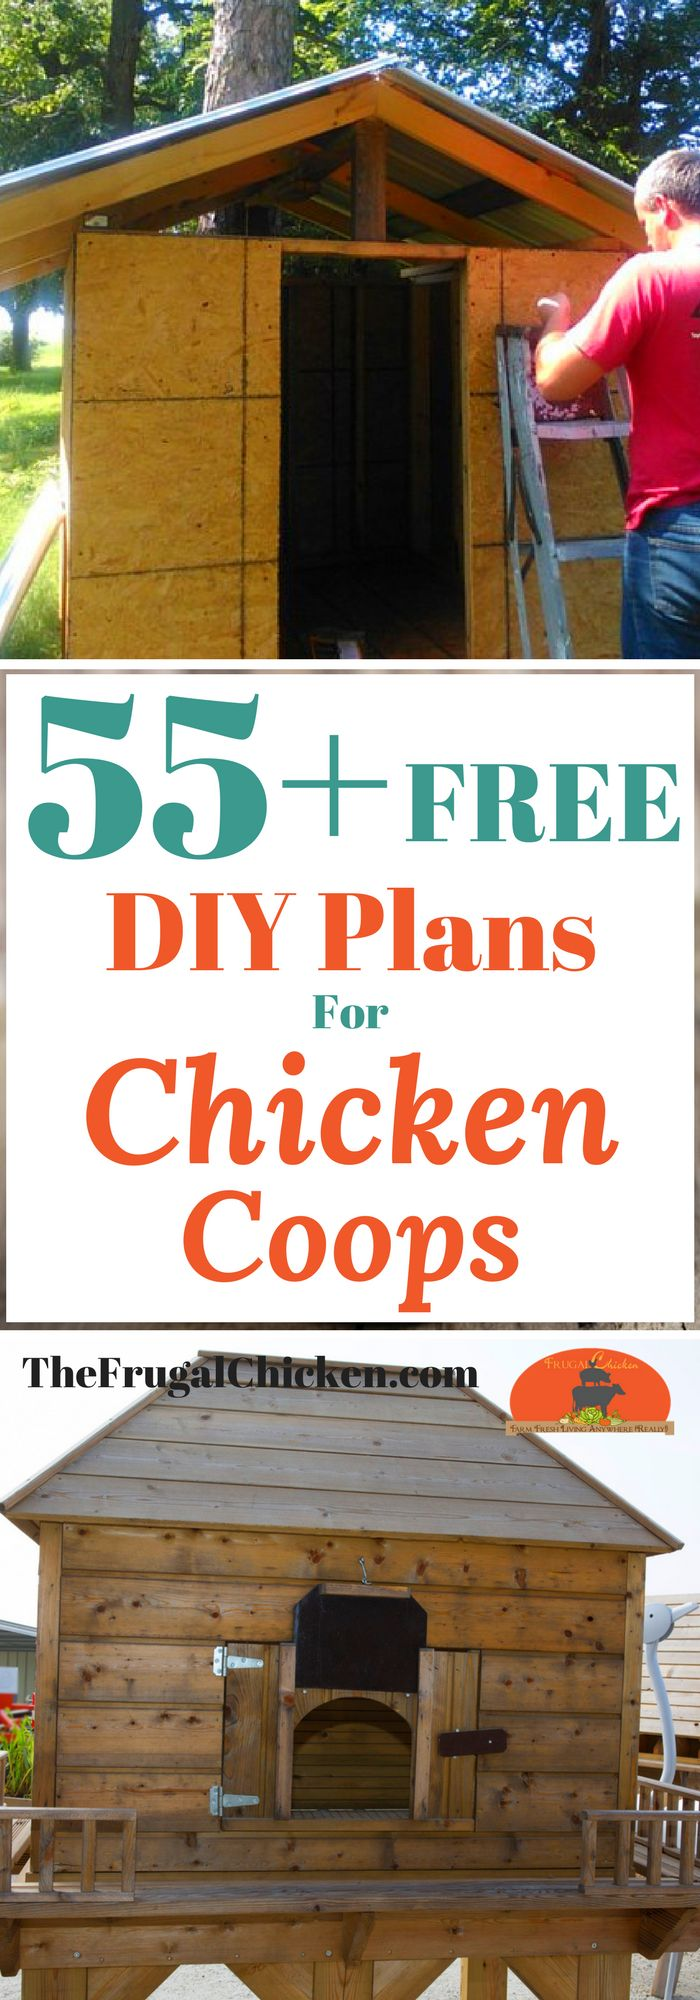 Got chickens? They'll need a place to call home! Here's 55+ totally free DIY chicken coop plans to help you design your coop!